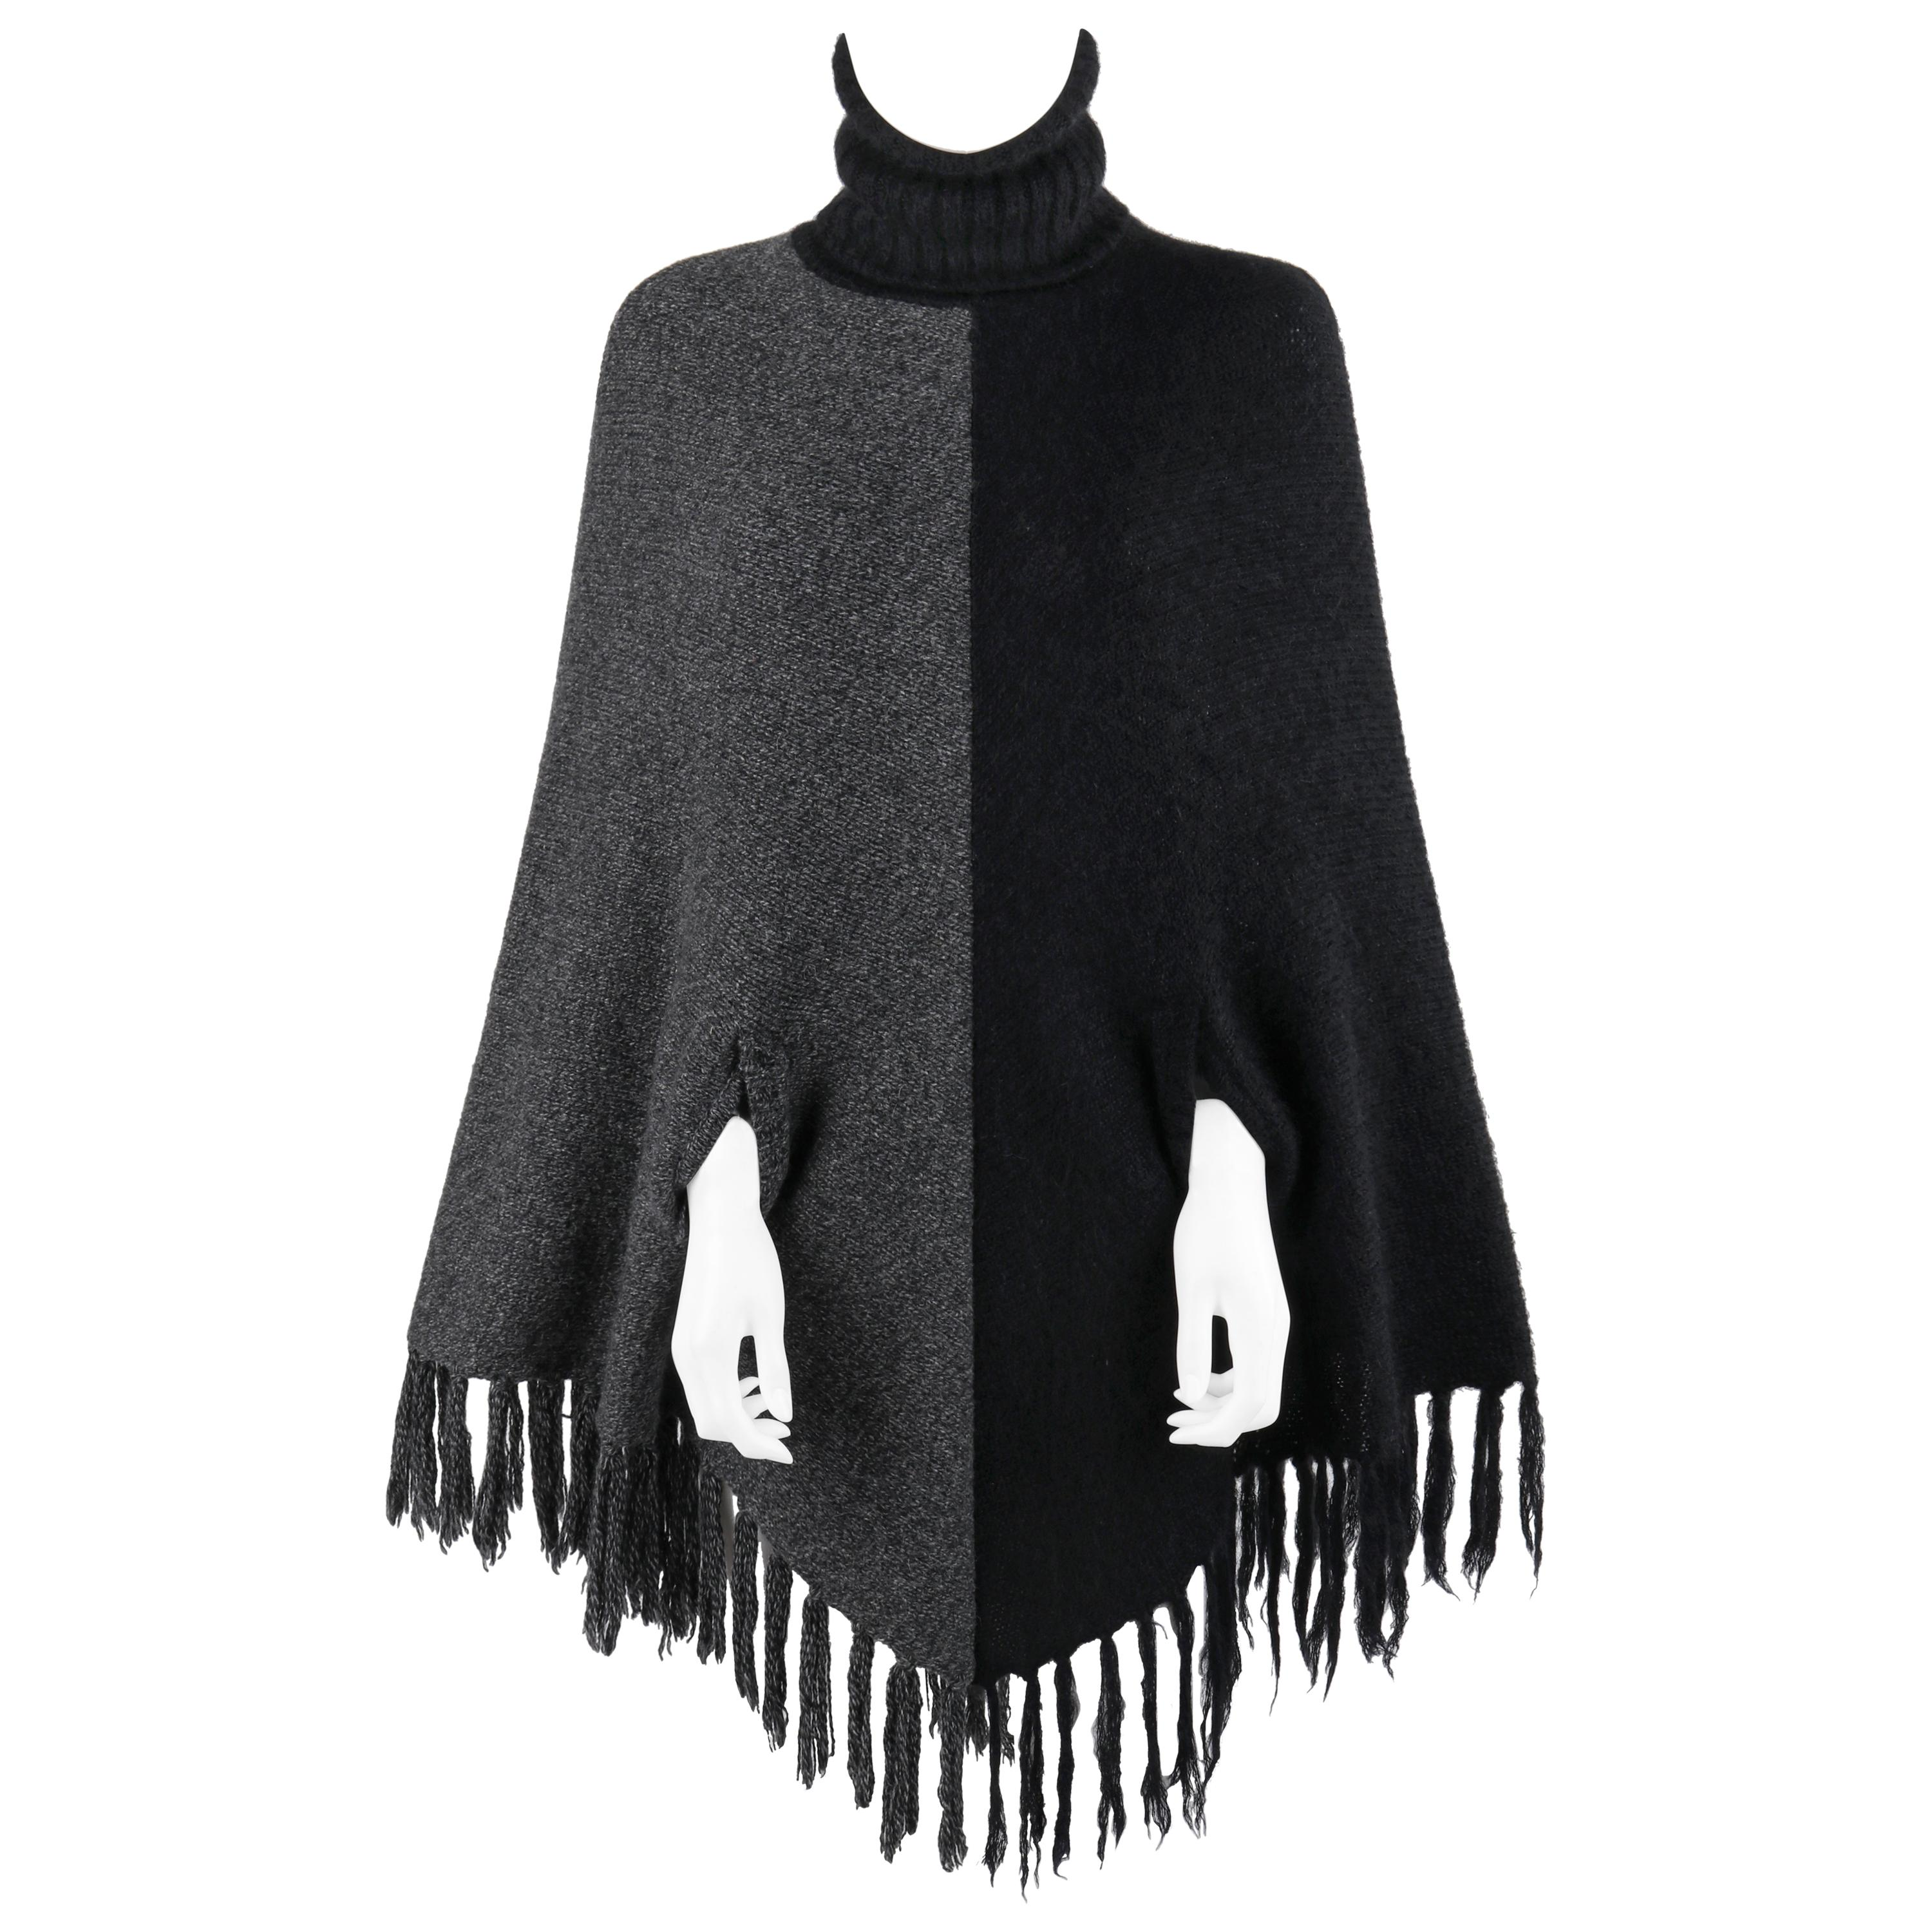 """ALEXANDER McQUEEN A/W 1999 """"The Overlook"""" Black Gray Knit Turtleneck Poncho Cape"""